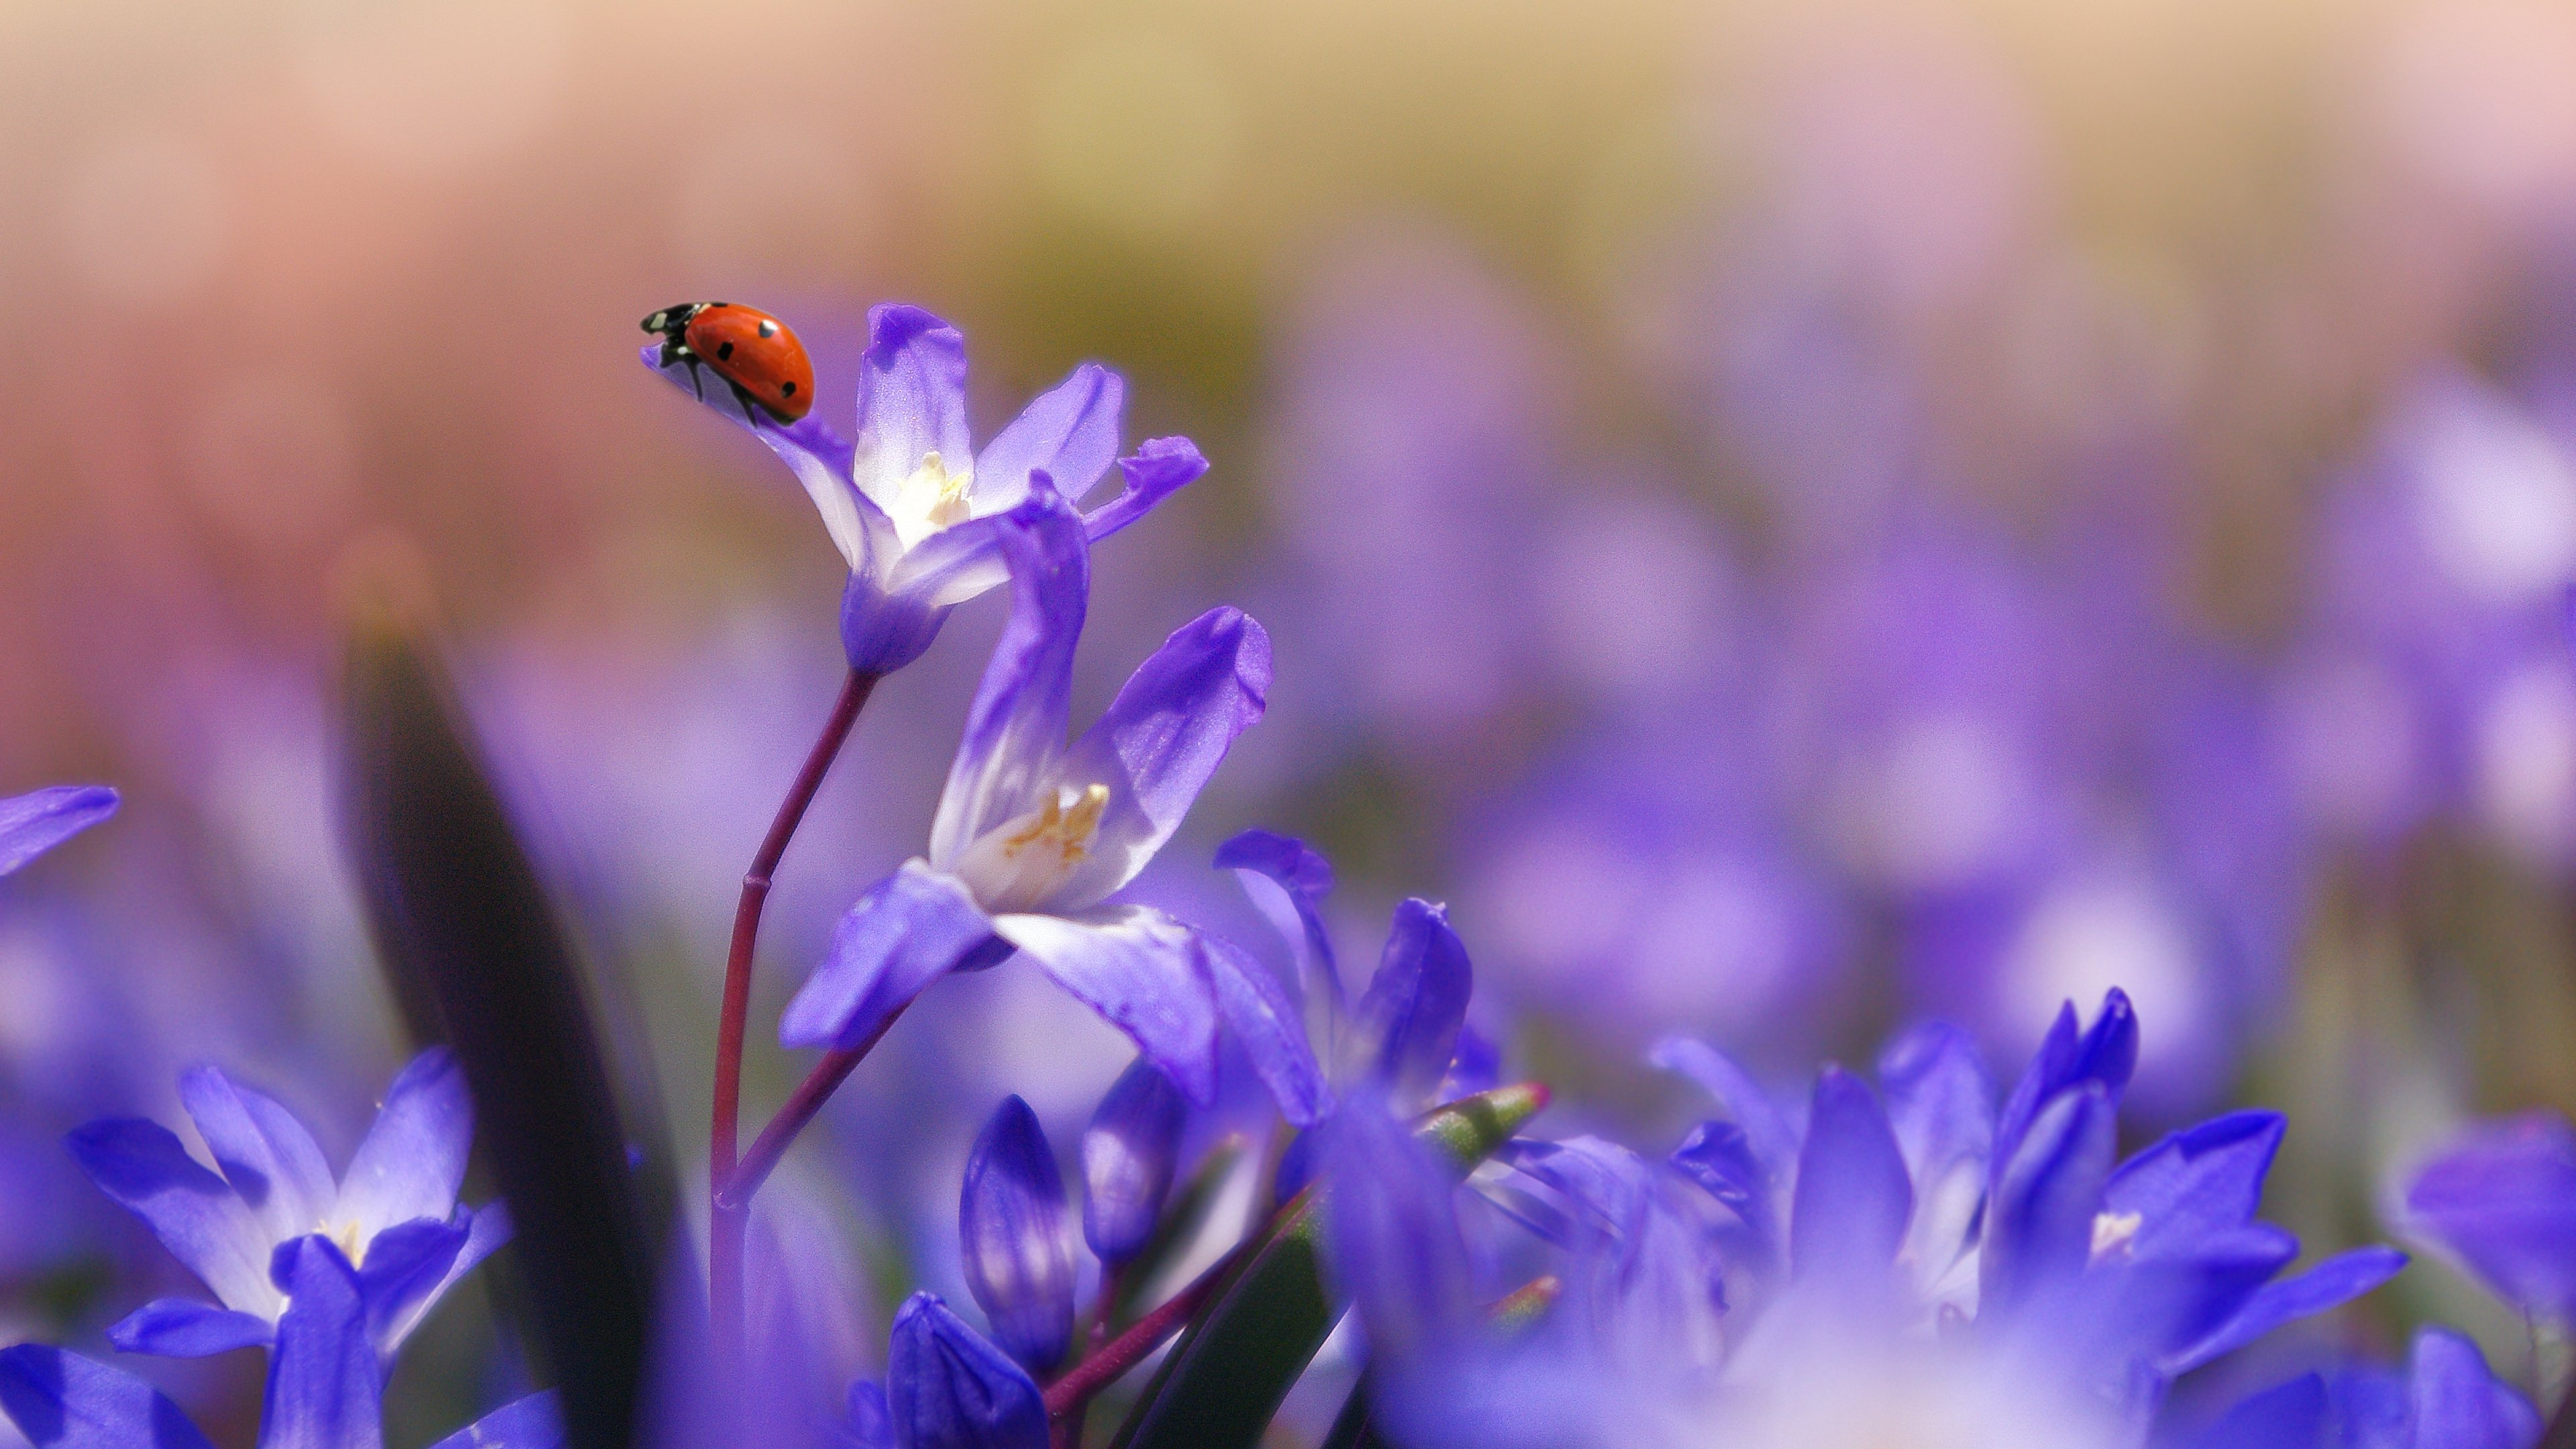 ladybug on purple flower wallpaper - mobile & desktop background